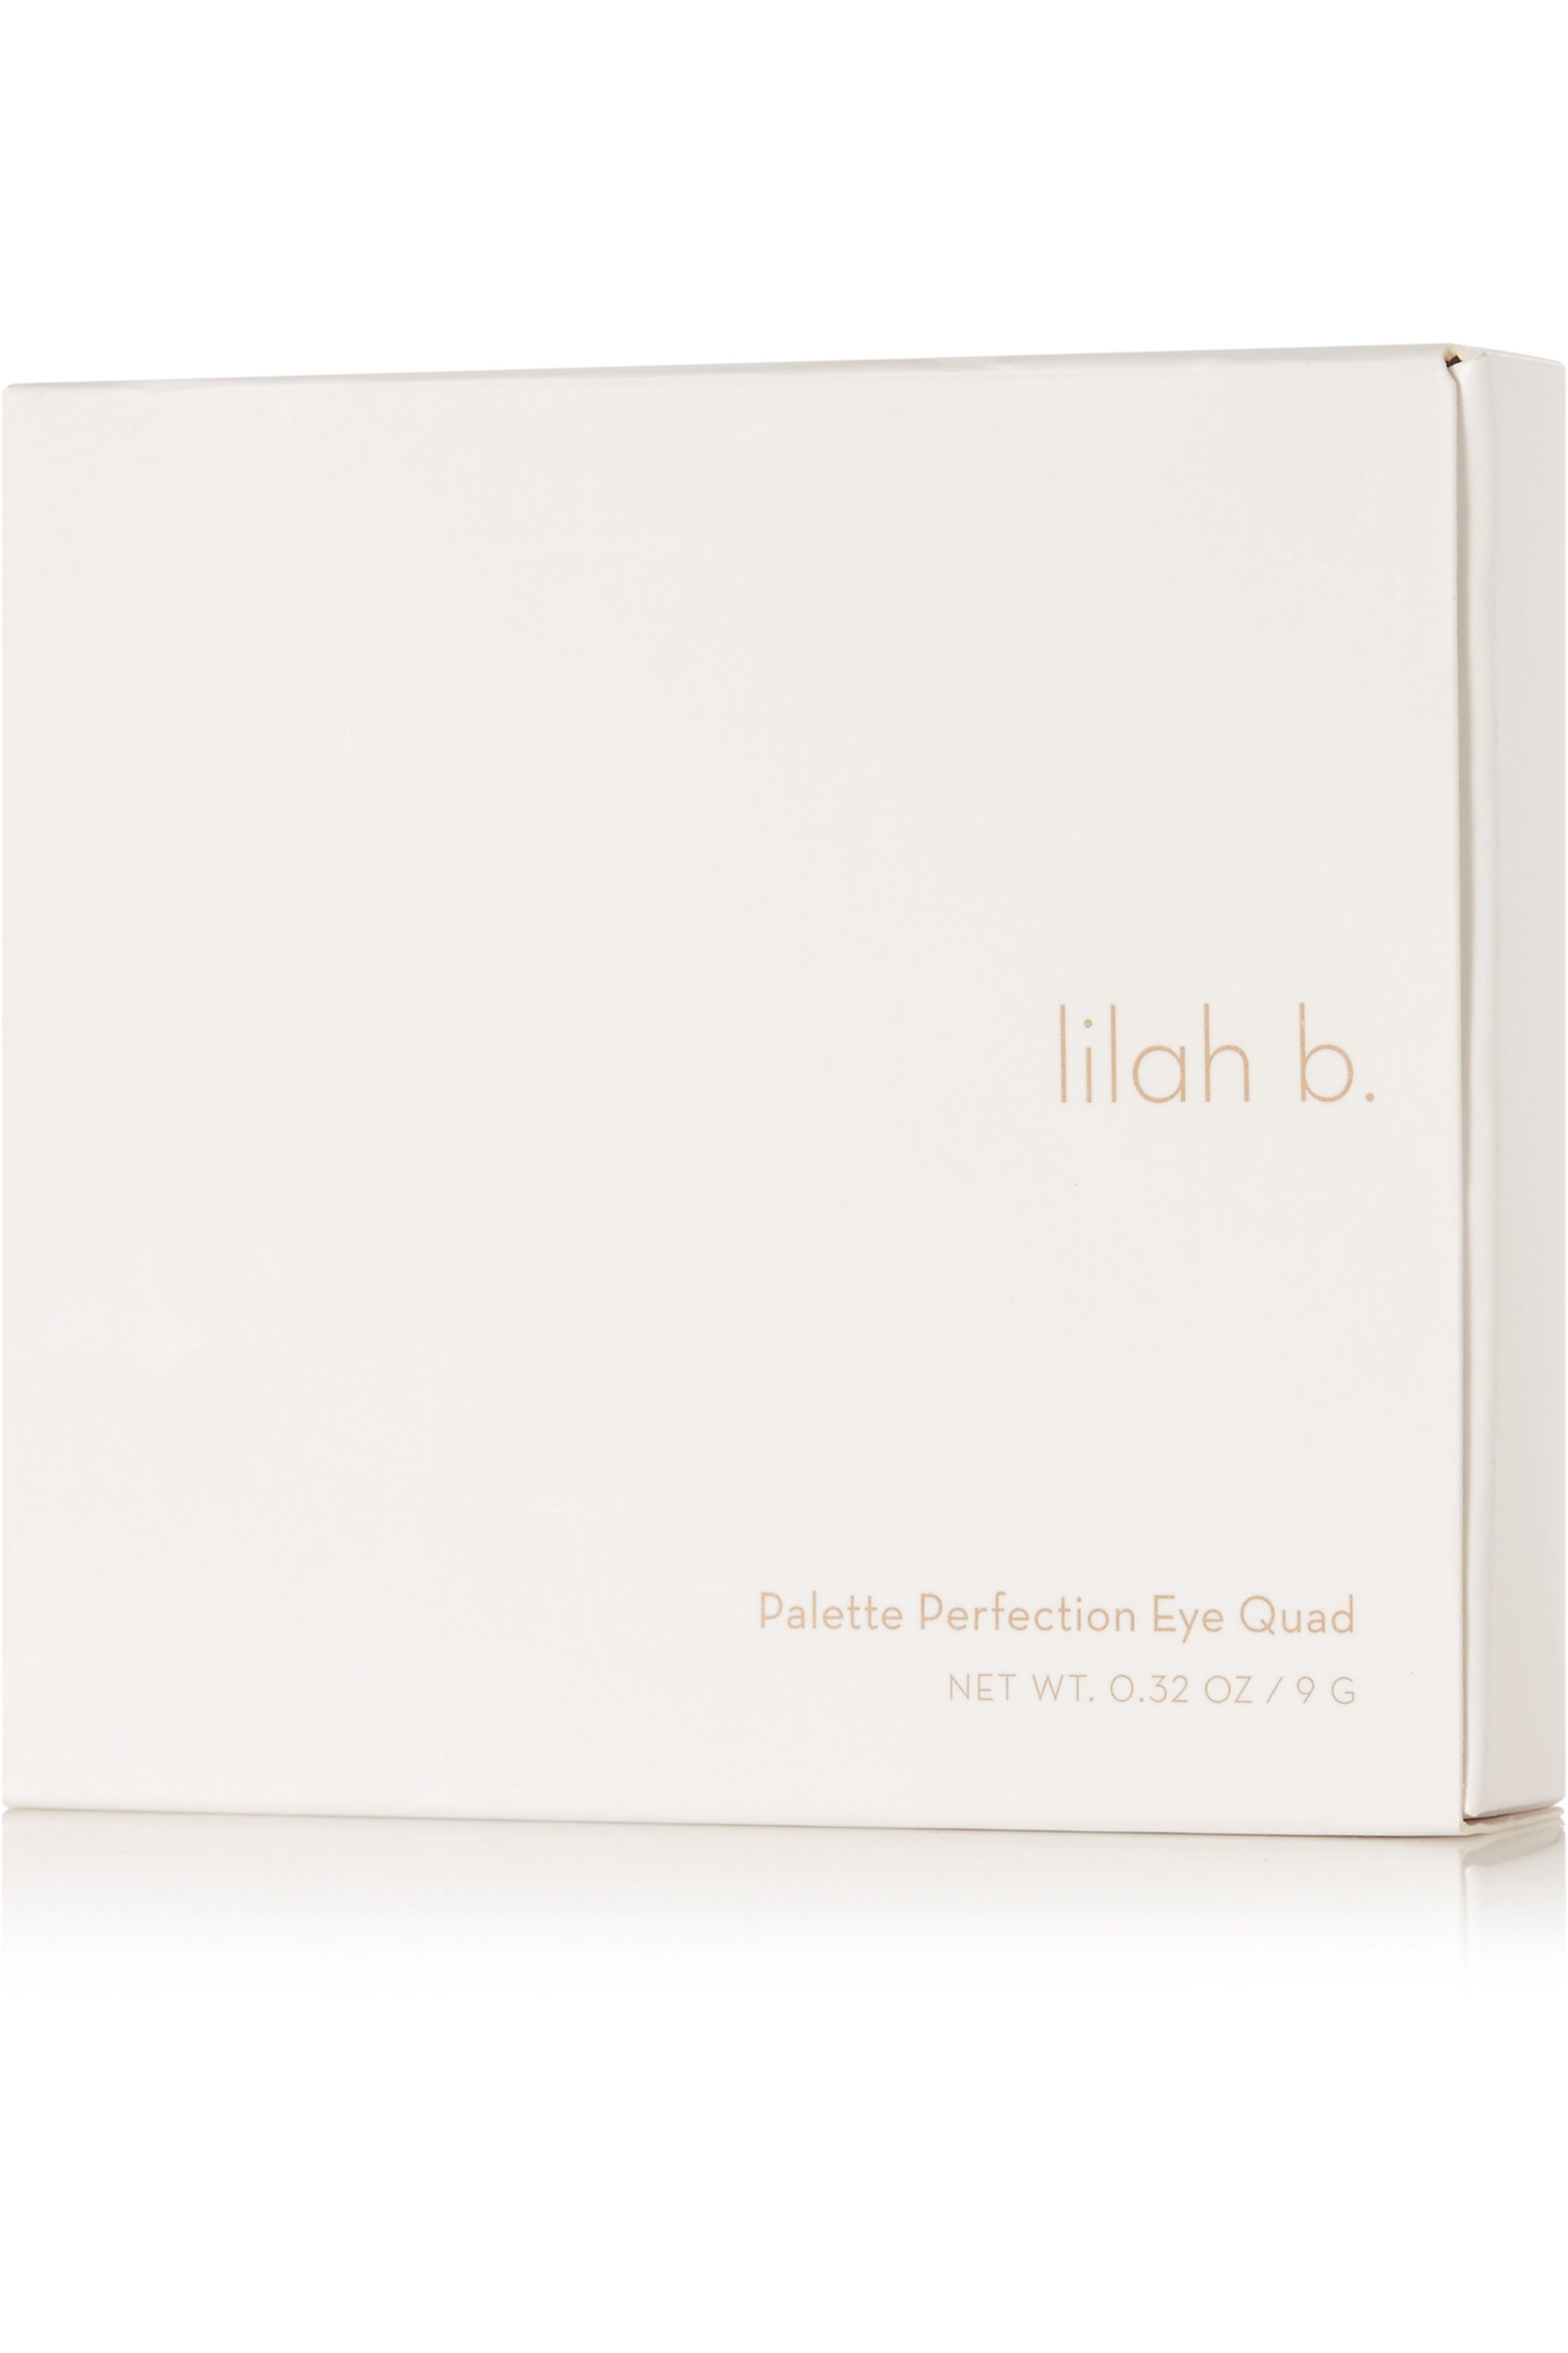 LILAH B. Palette Perfection Eye Quad - b.alluring